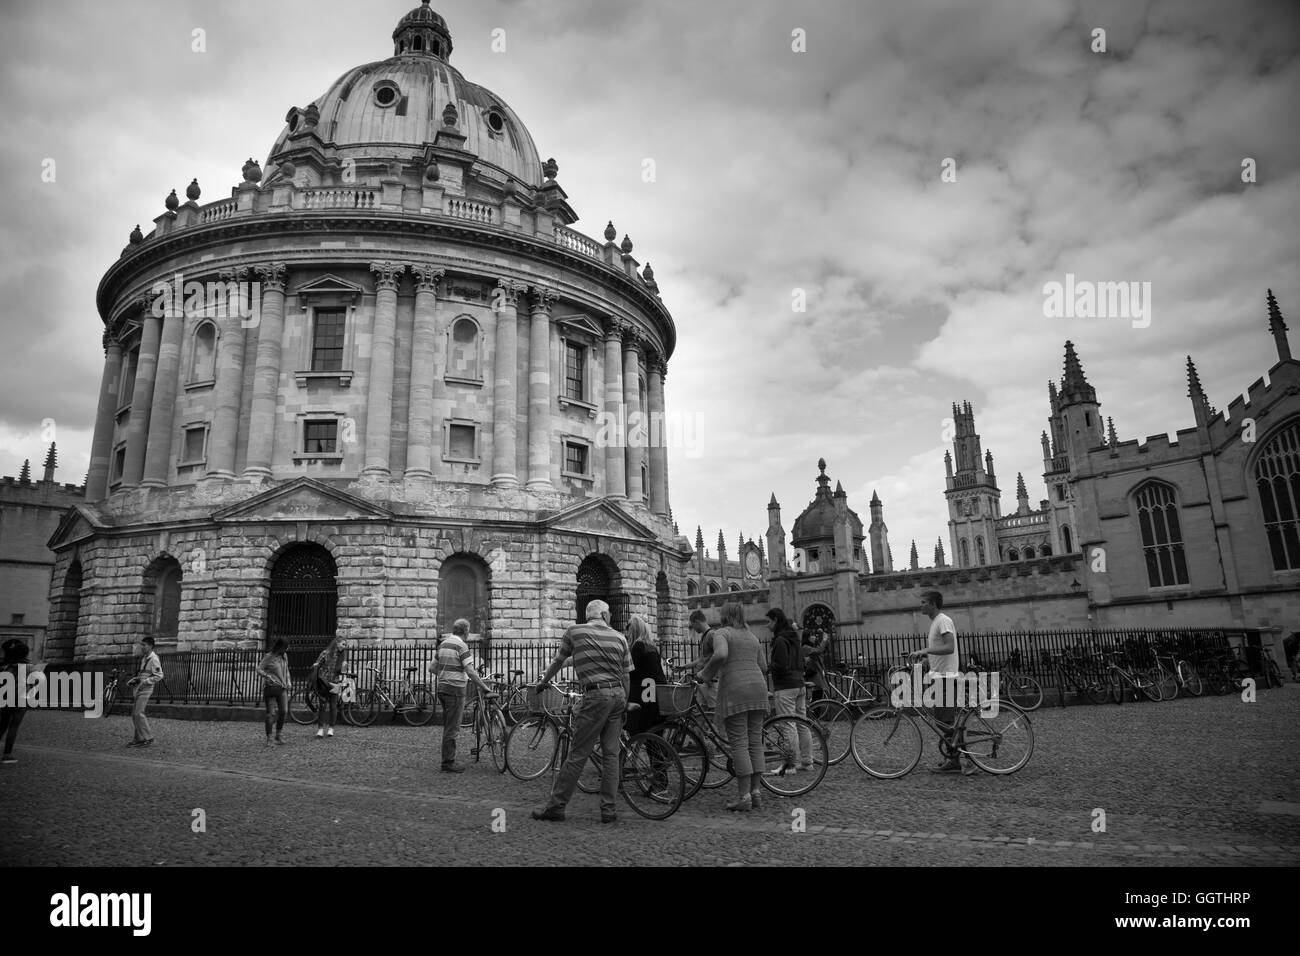 Radcliffe Camera, Oxford (University). 2016. Street Scene. This building was formerly known as 'Physics Library'. - Stock Image